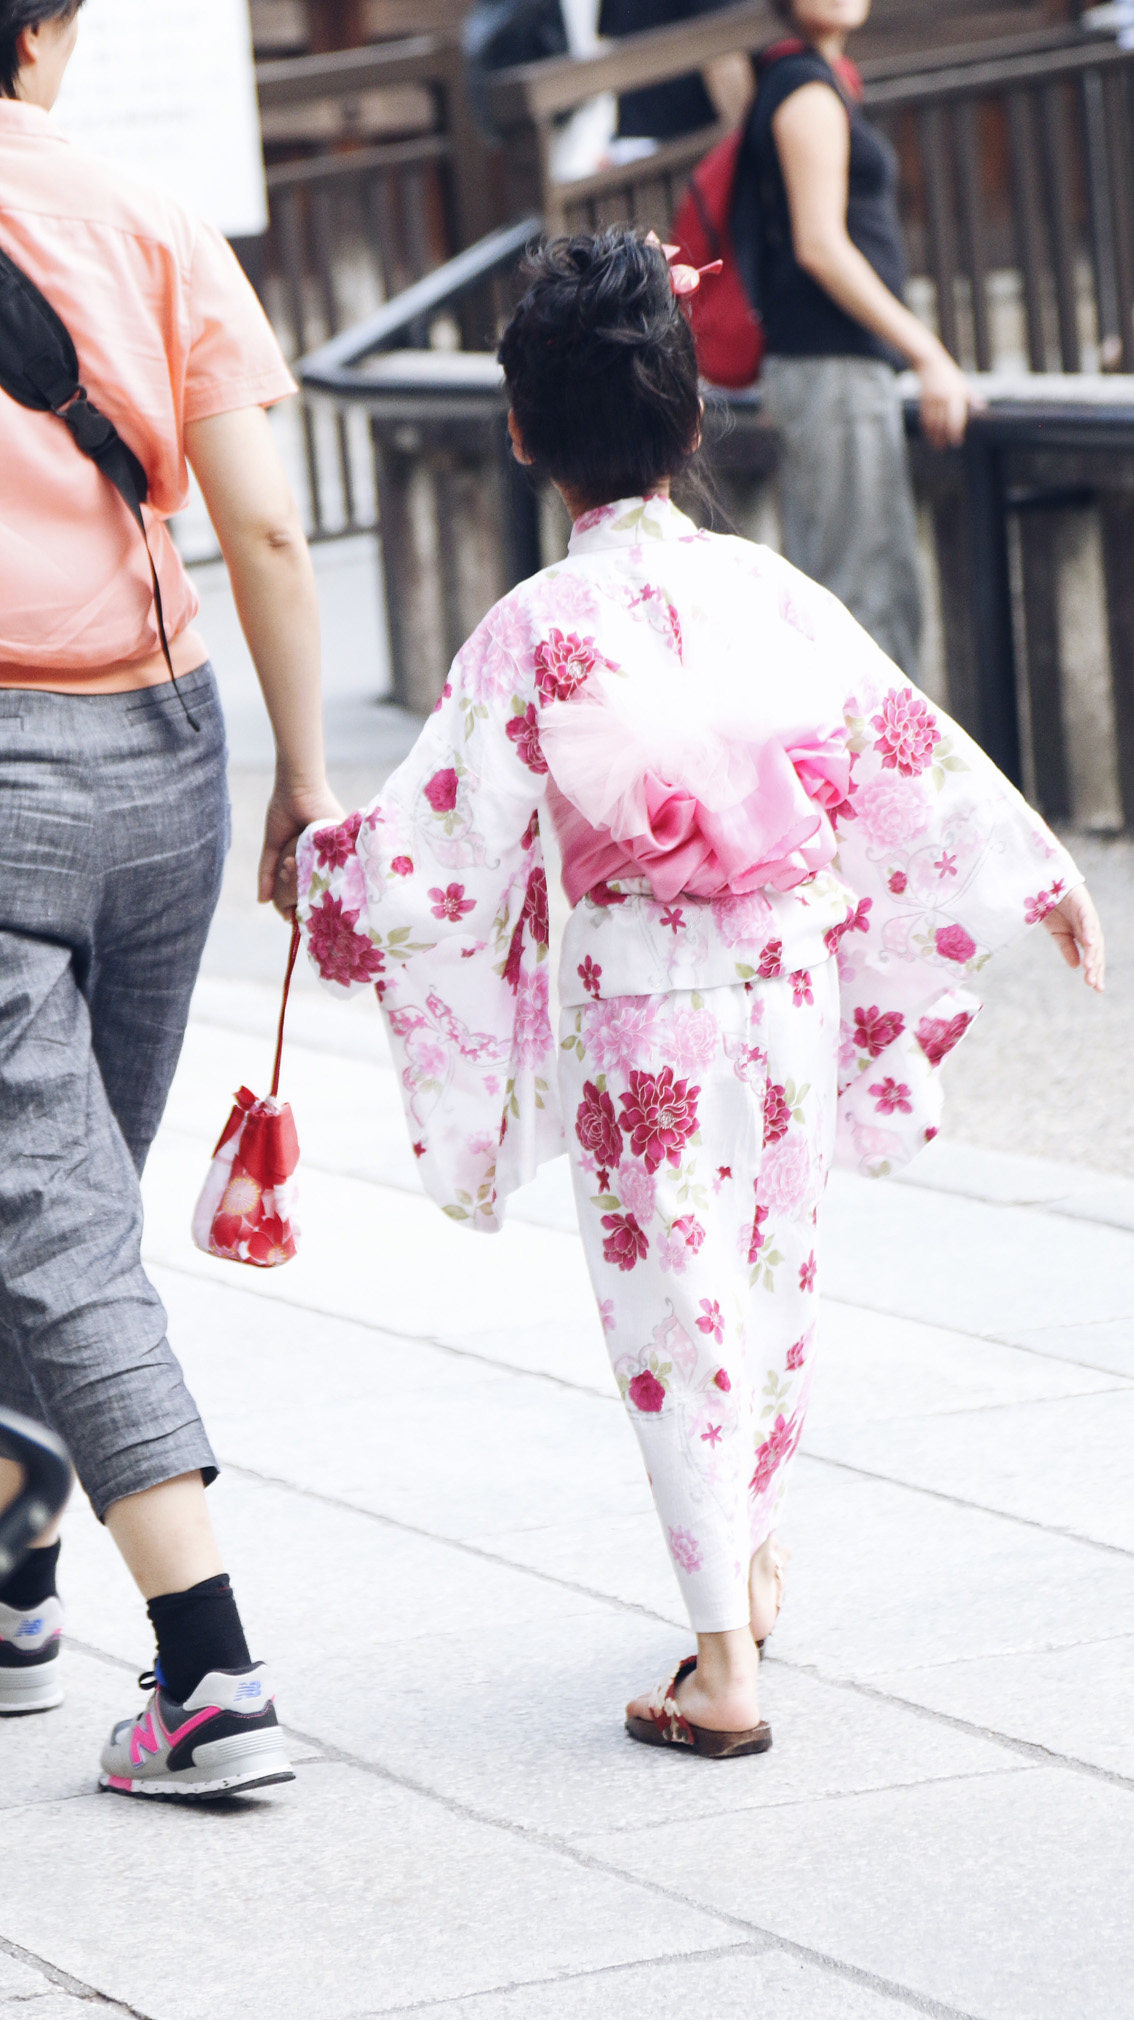 24 #Giappotour with Blueberry Travel: best places to see in Kyoto during a day.